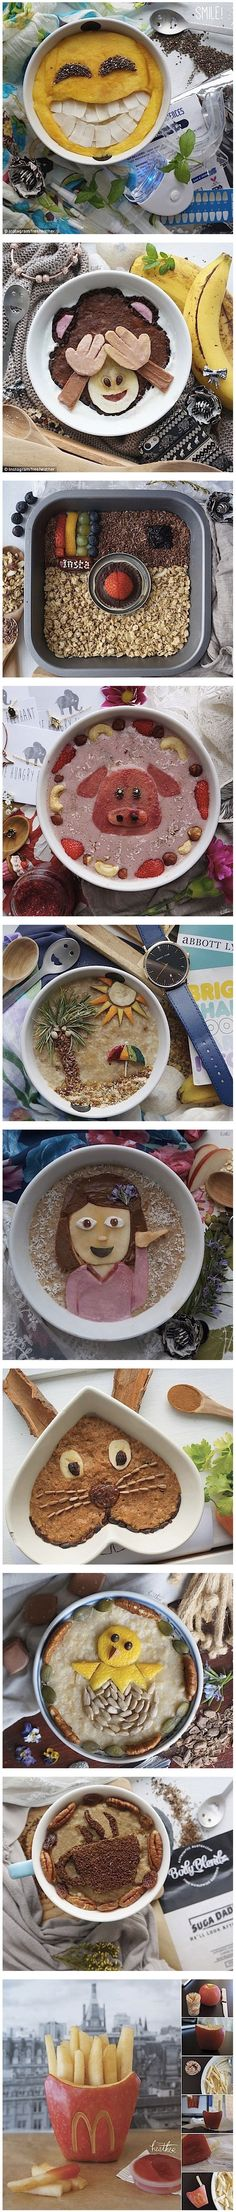 A good way to start the day. Funny food #cereal